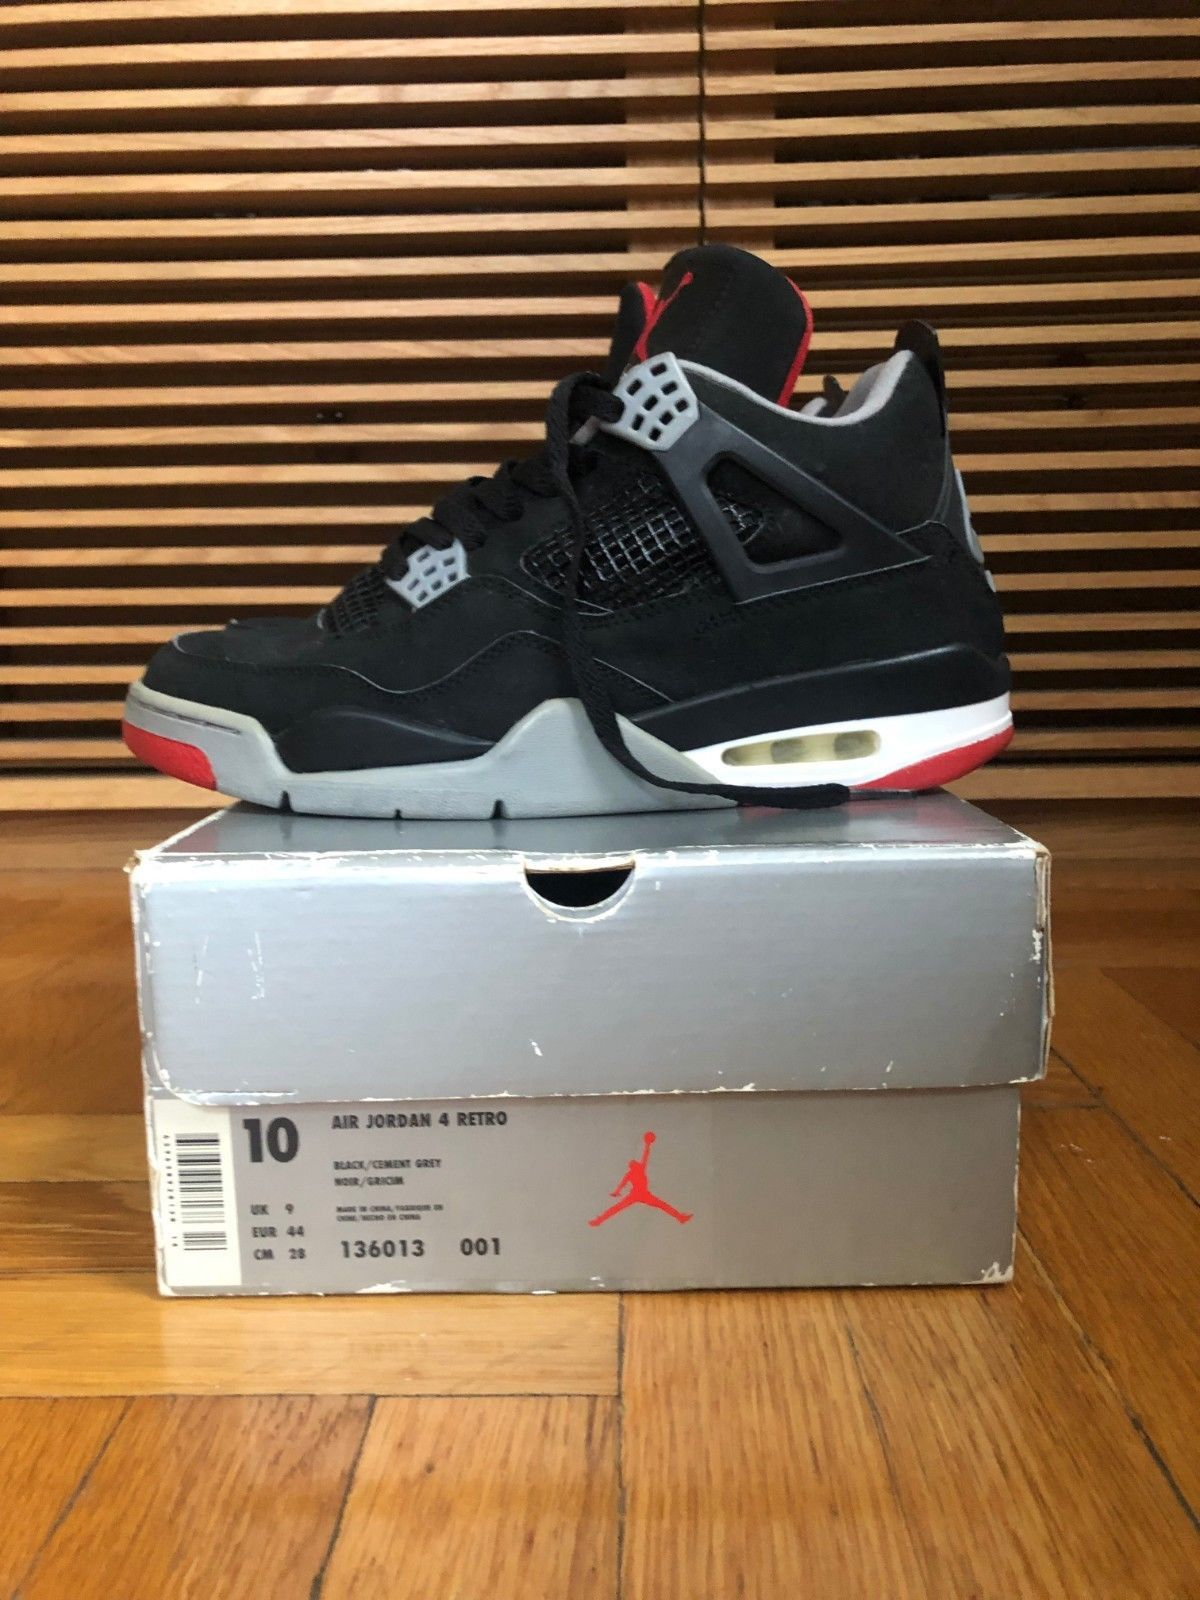 official photos de850 d66ca Nike Air Jordan 4 Retro 1999 Black Cement Grey Size 10 Vintage